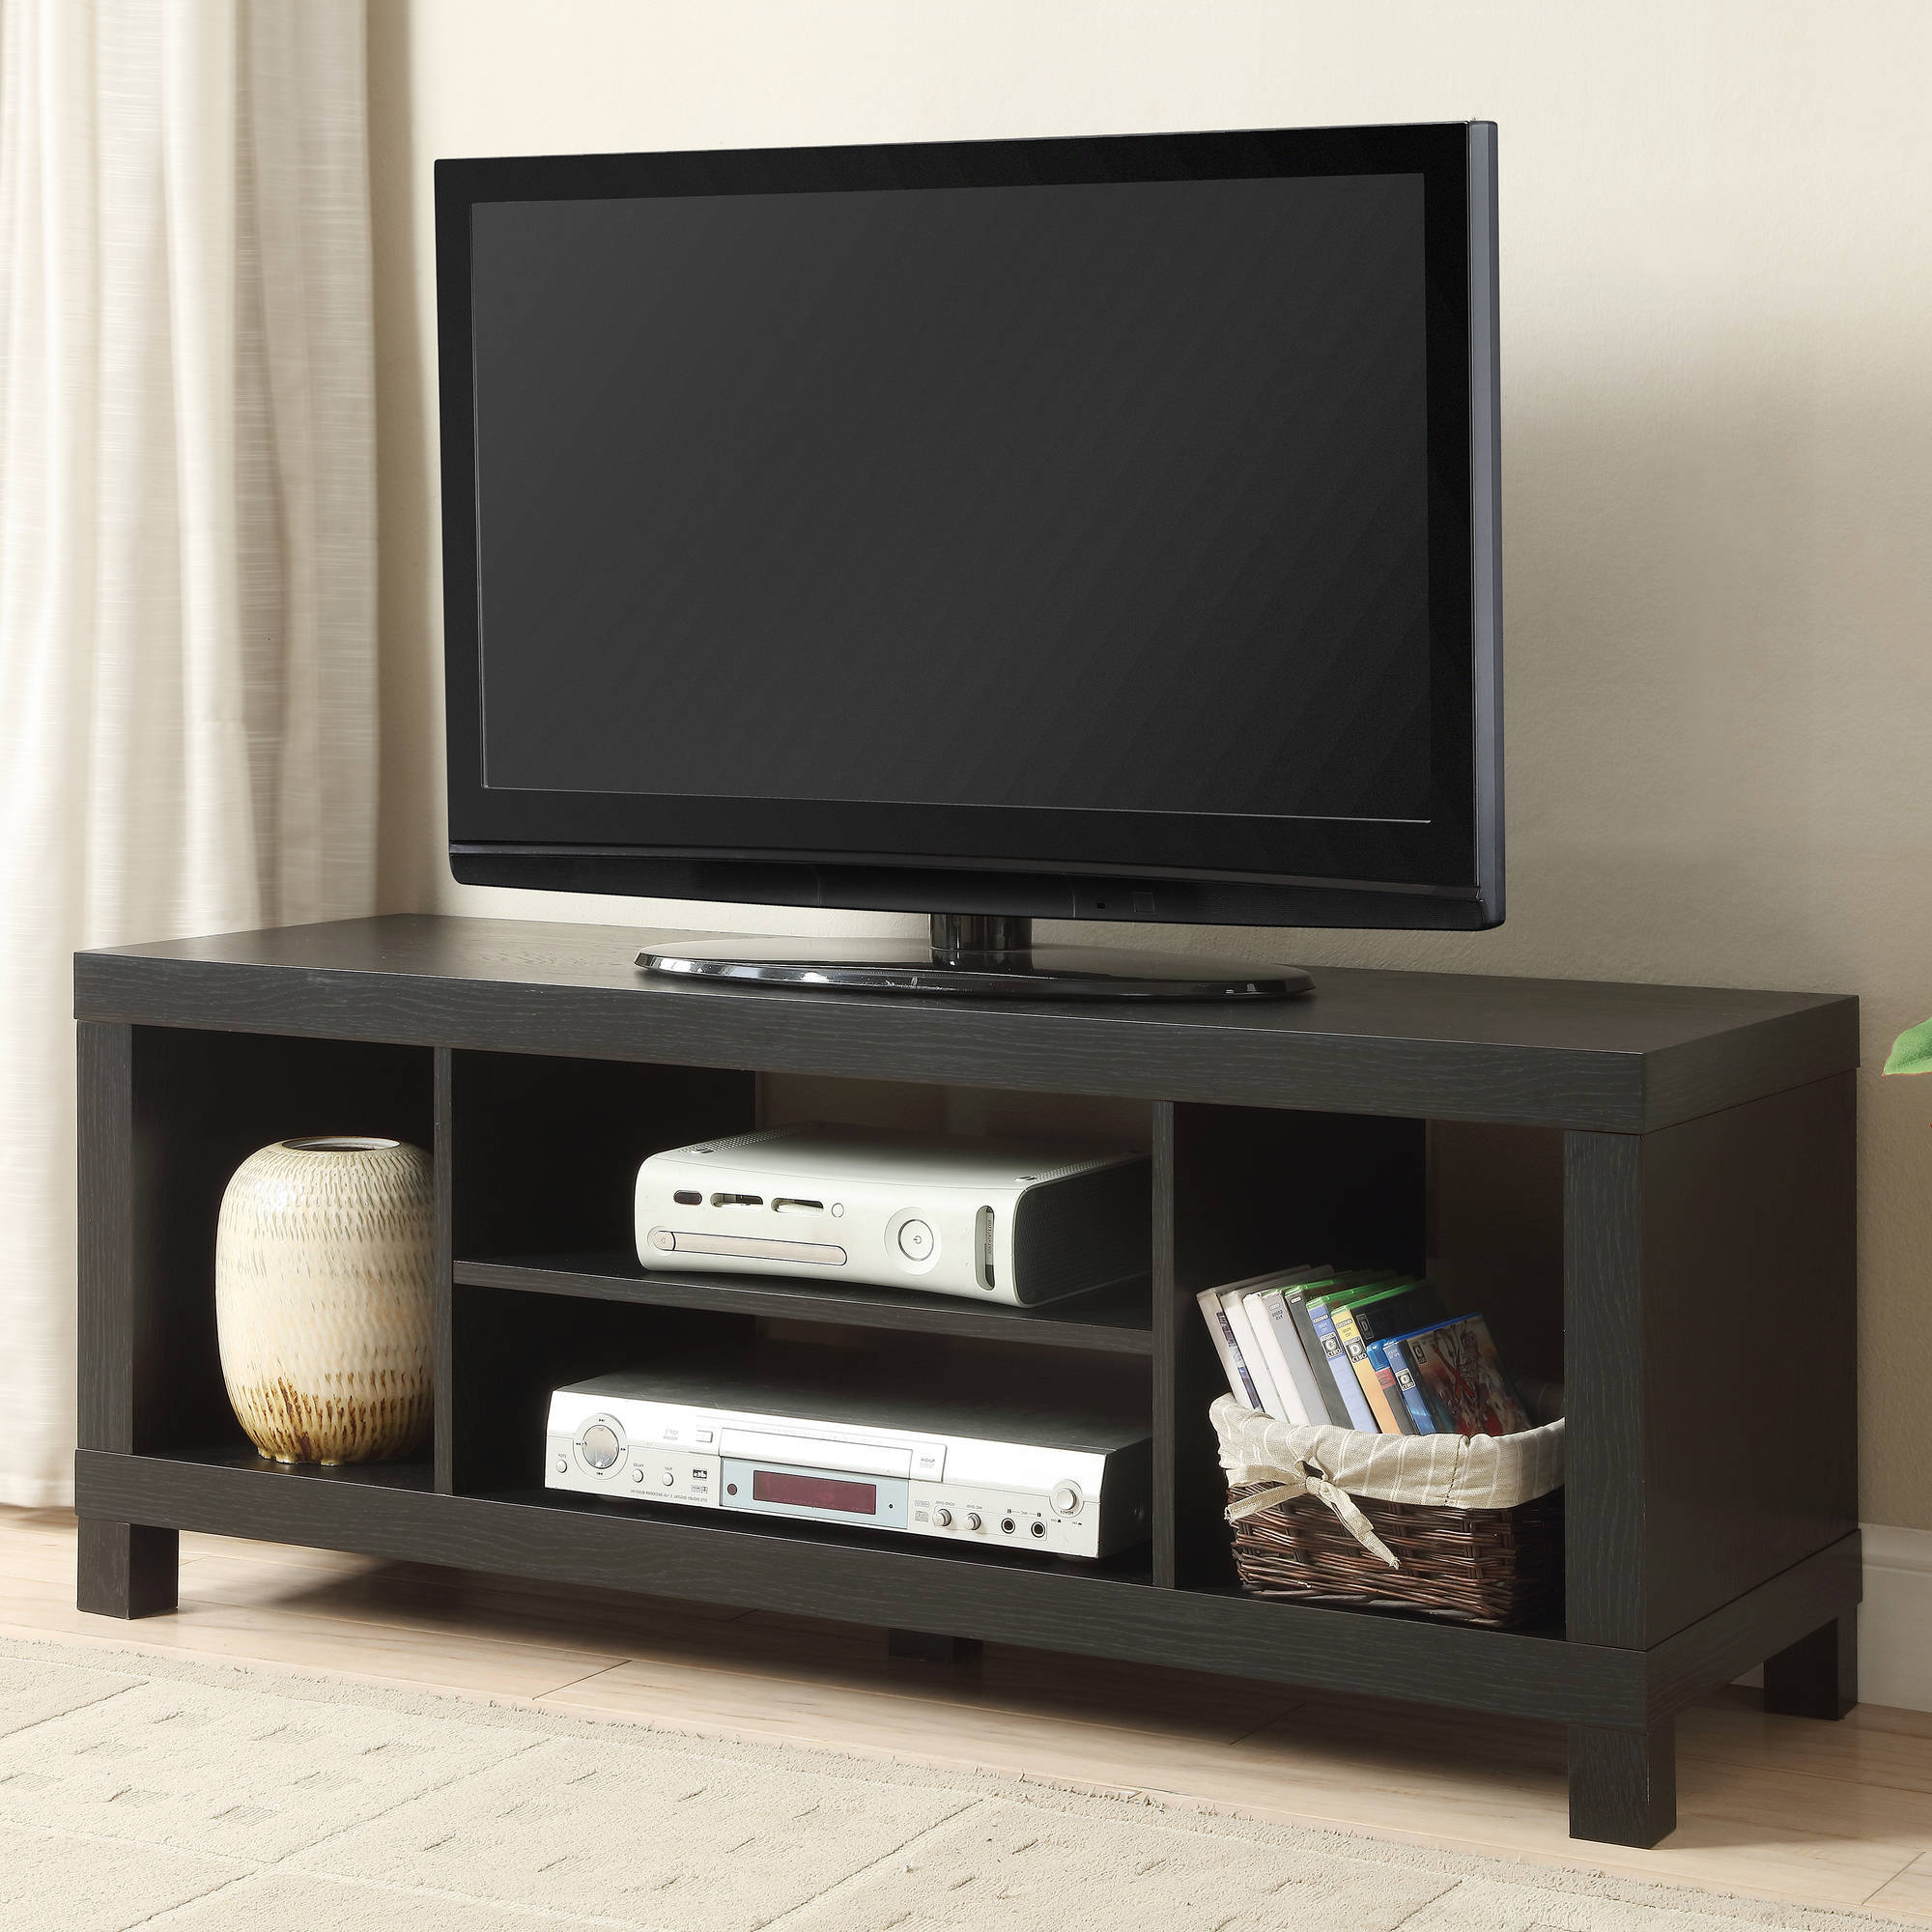 "Mainstays Tv Stand For Tvs Up To 42"", Multiple Colors – Walmart Intended For Well Known Tv With Stands (View 4 of 20)"